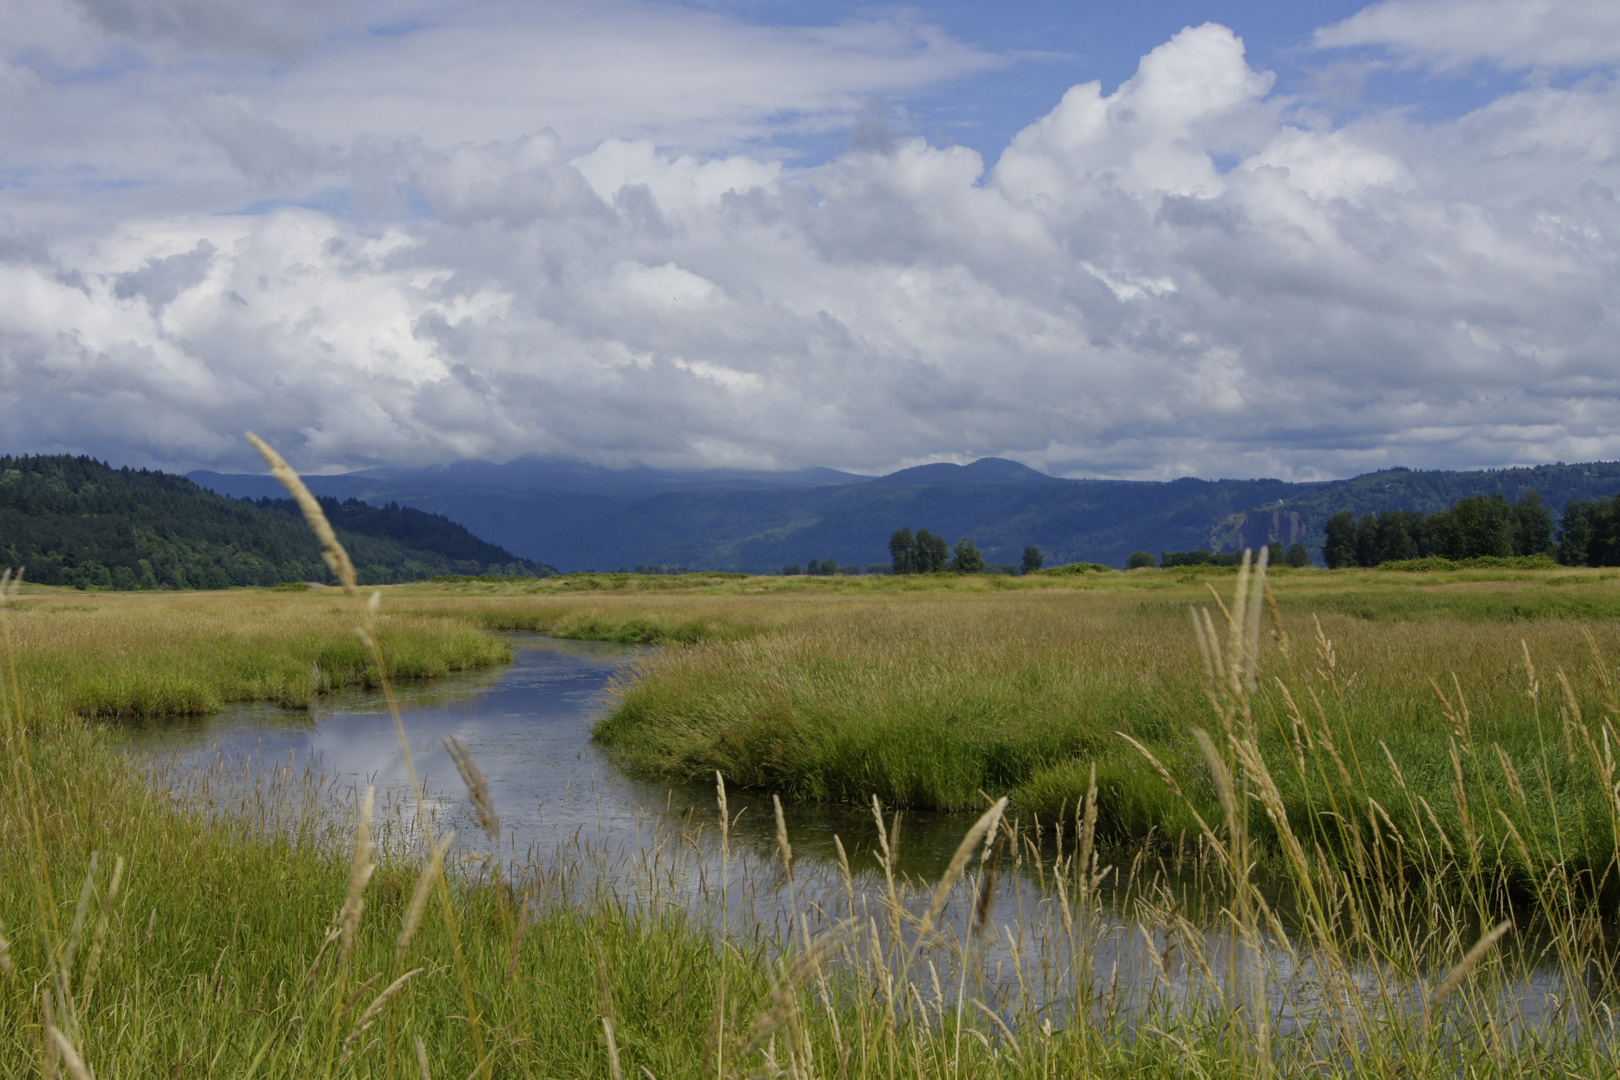 The beautiful and vast landscape of the refuge.